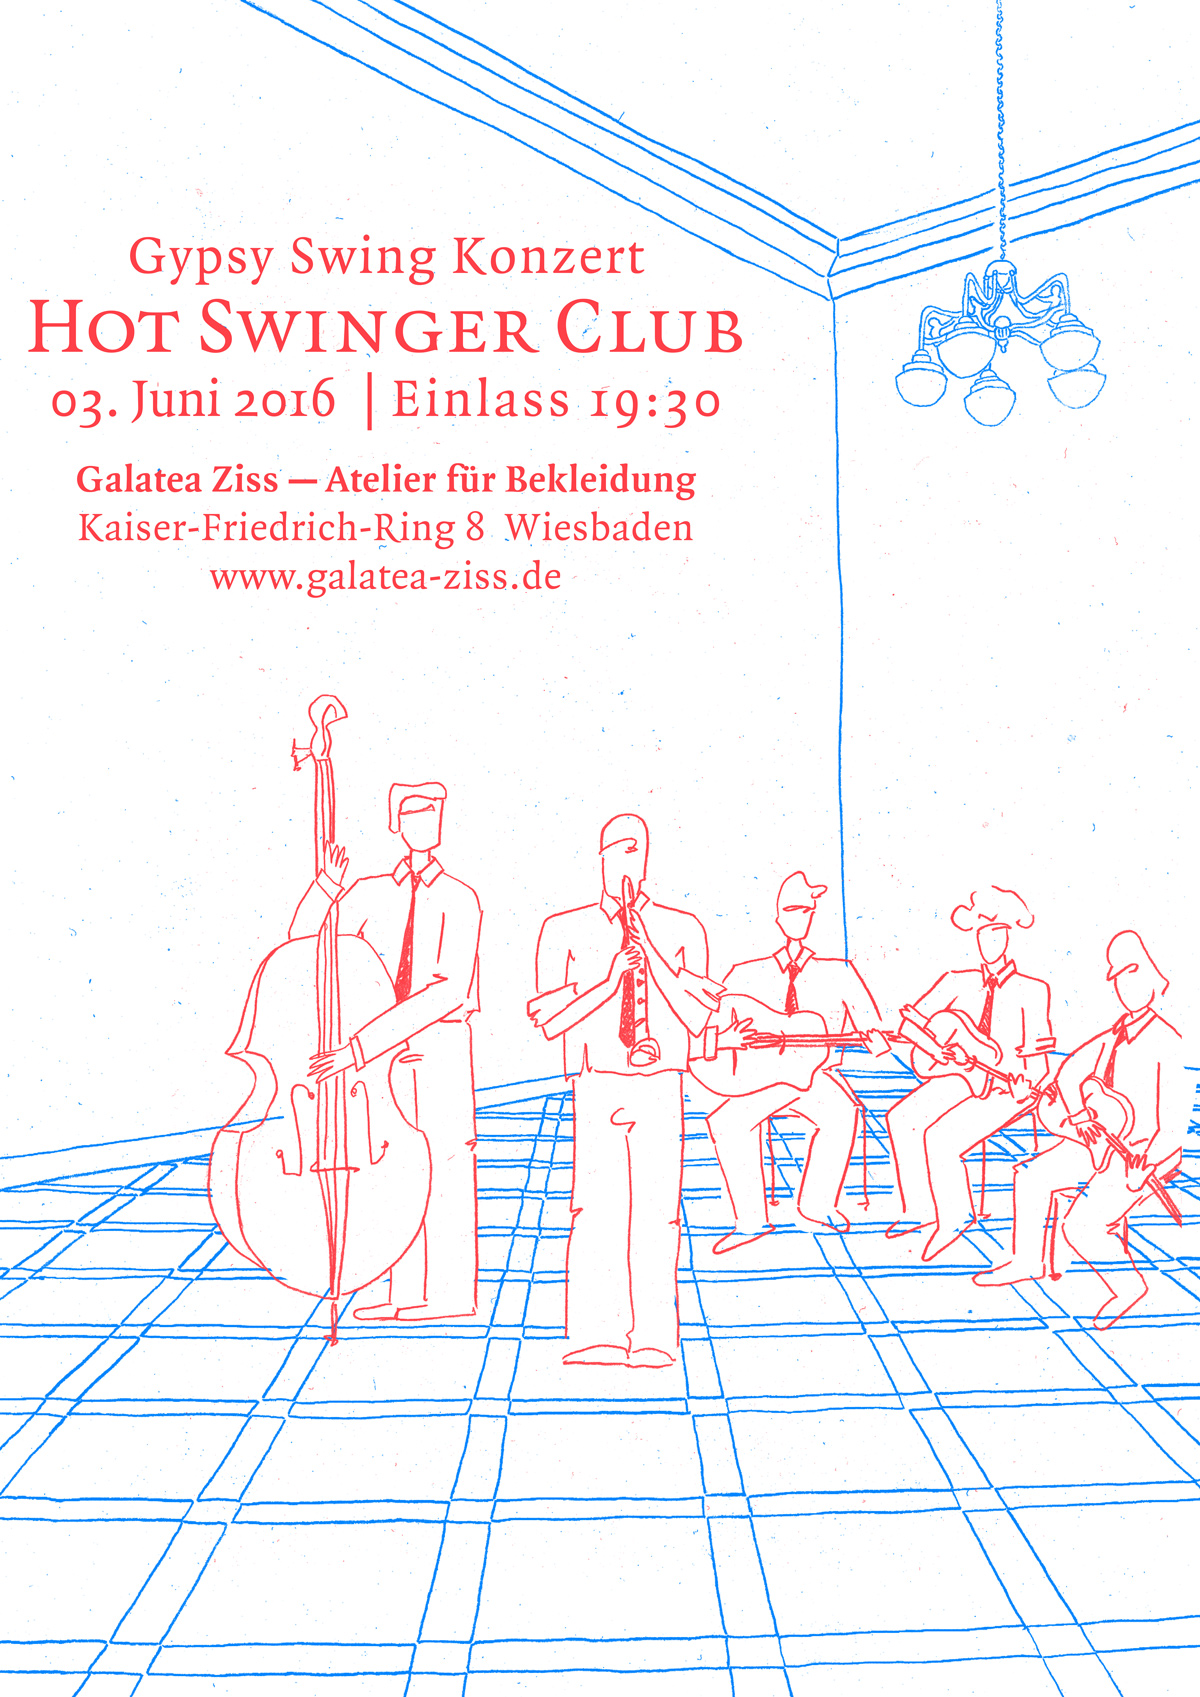 Gyspy Swing Konzert mit dem Hot Swinger Club